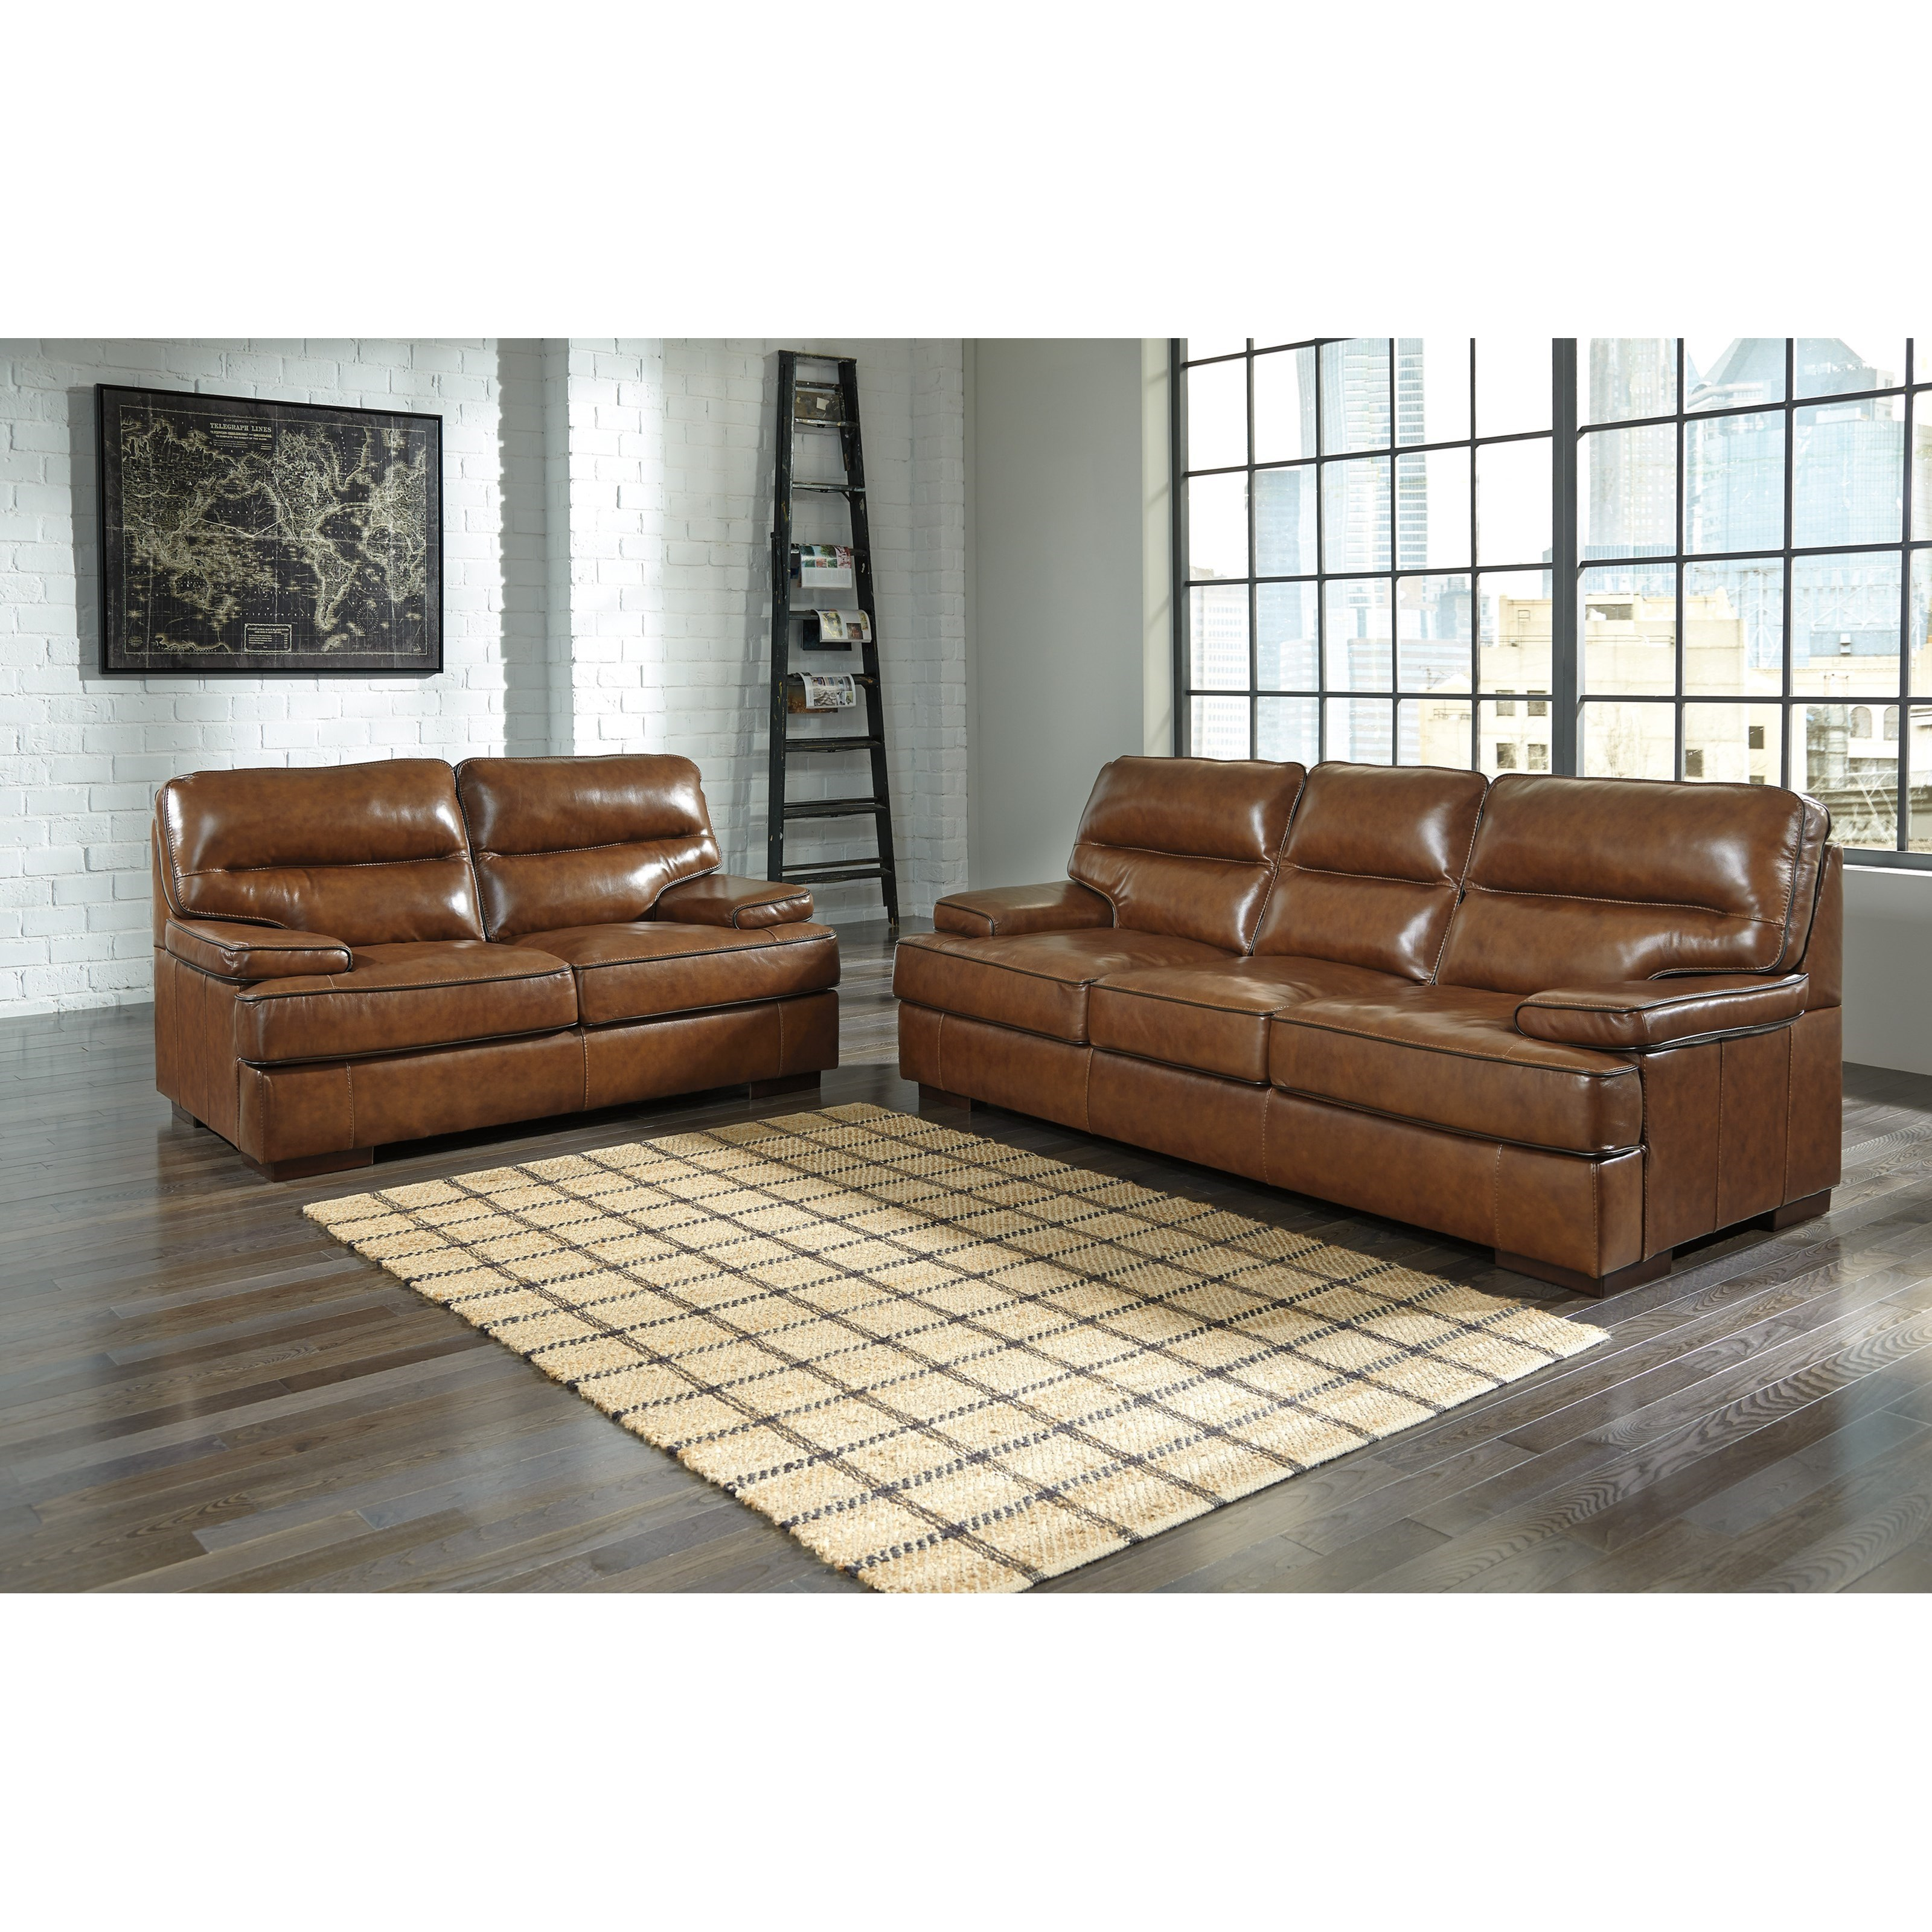 Signature Design By Ashley Palner Stationary Living Room Group Value City Furniture